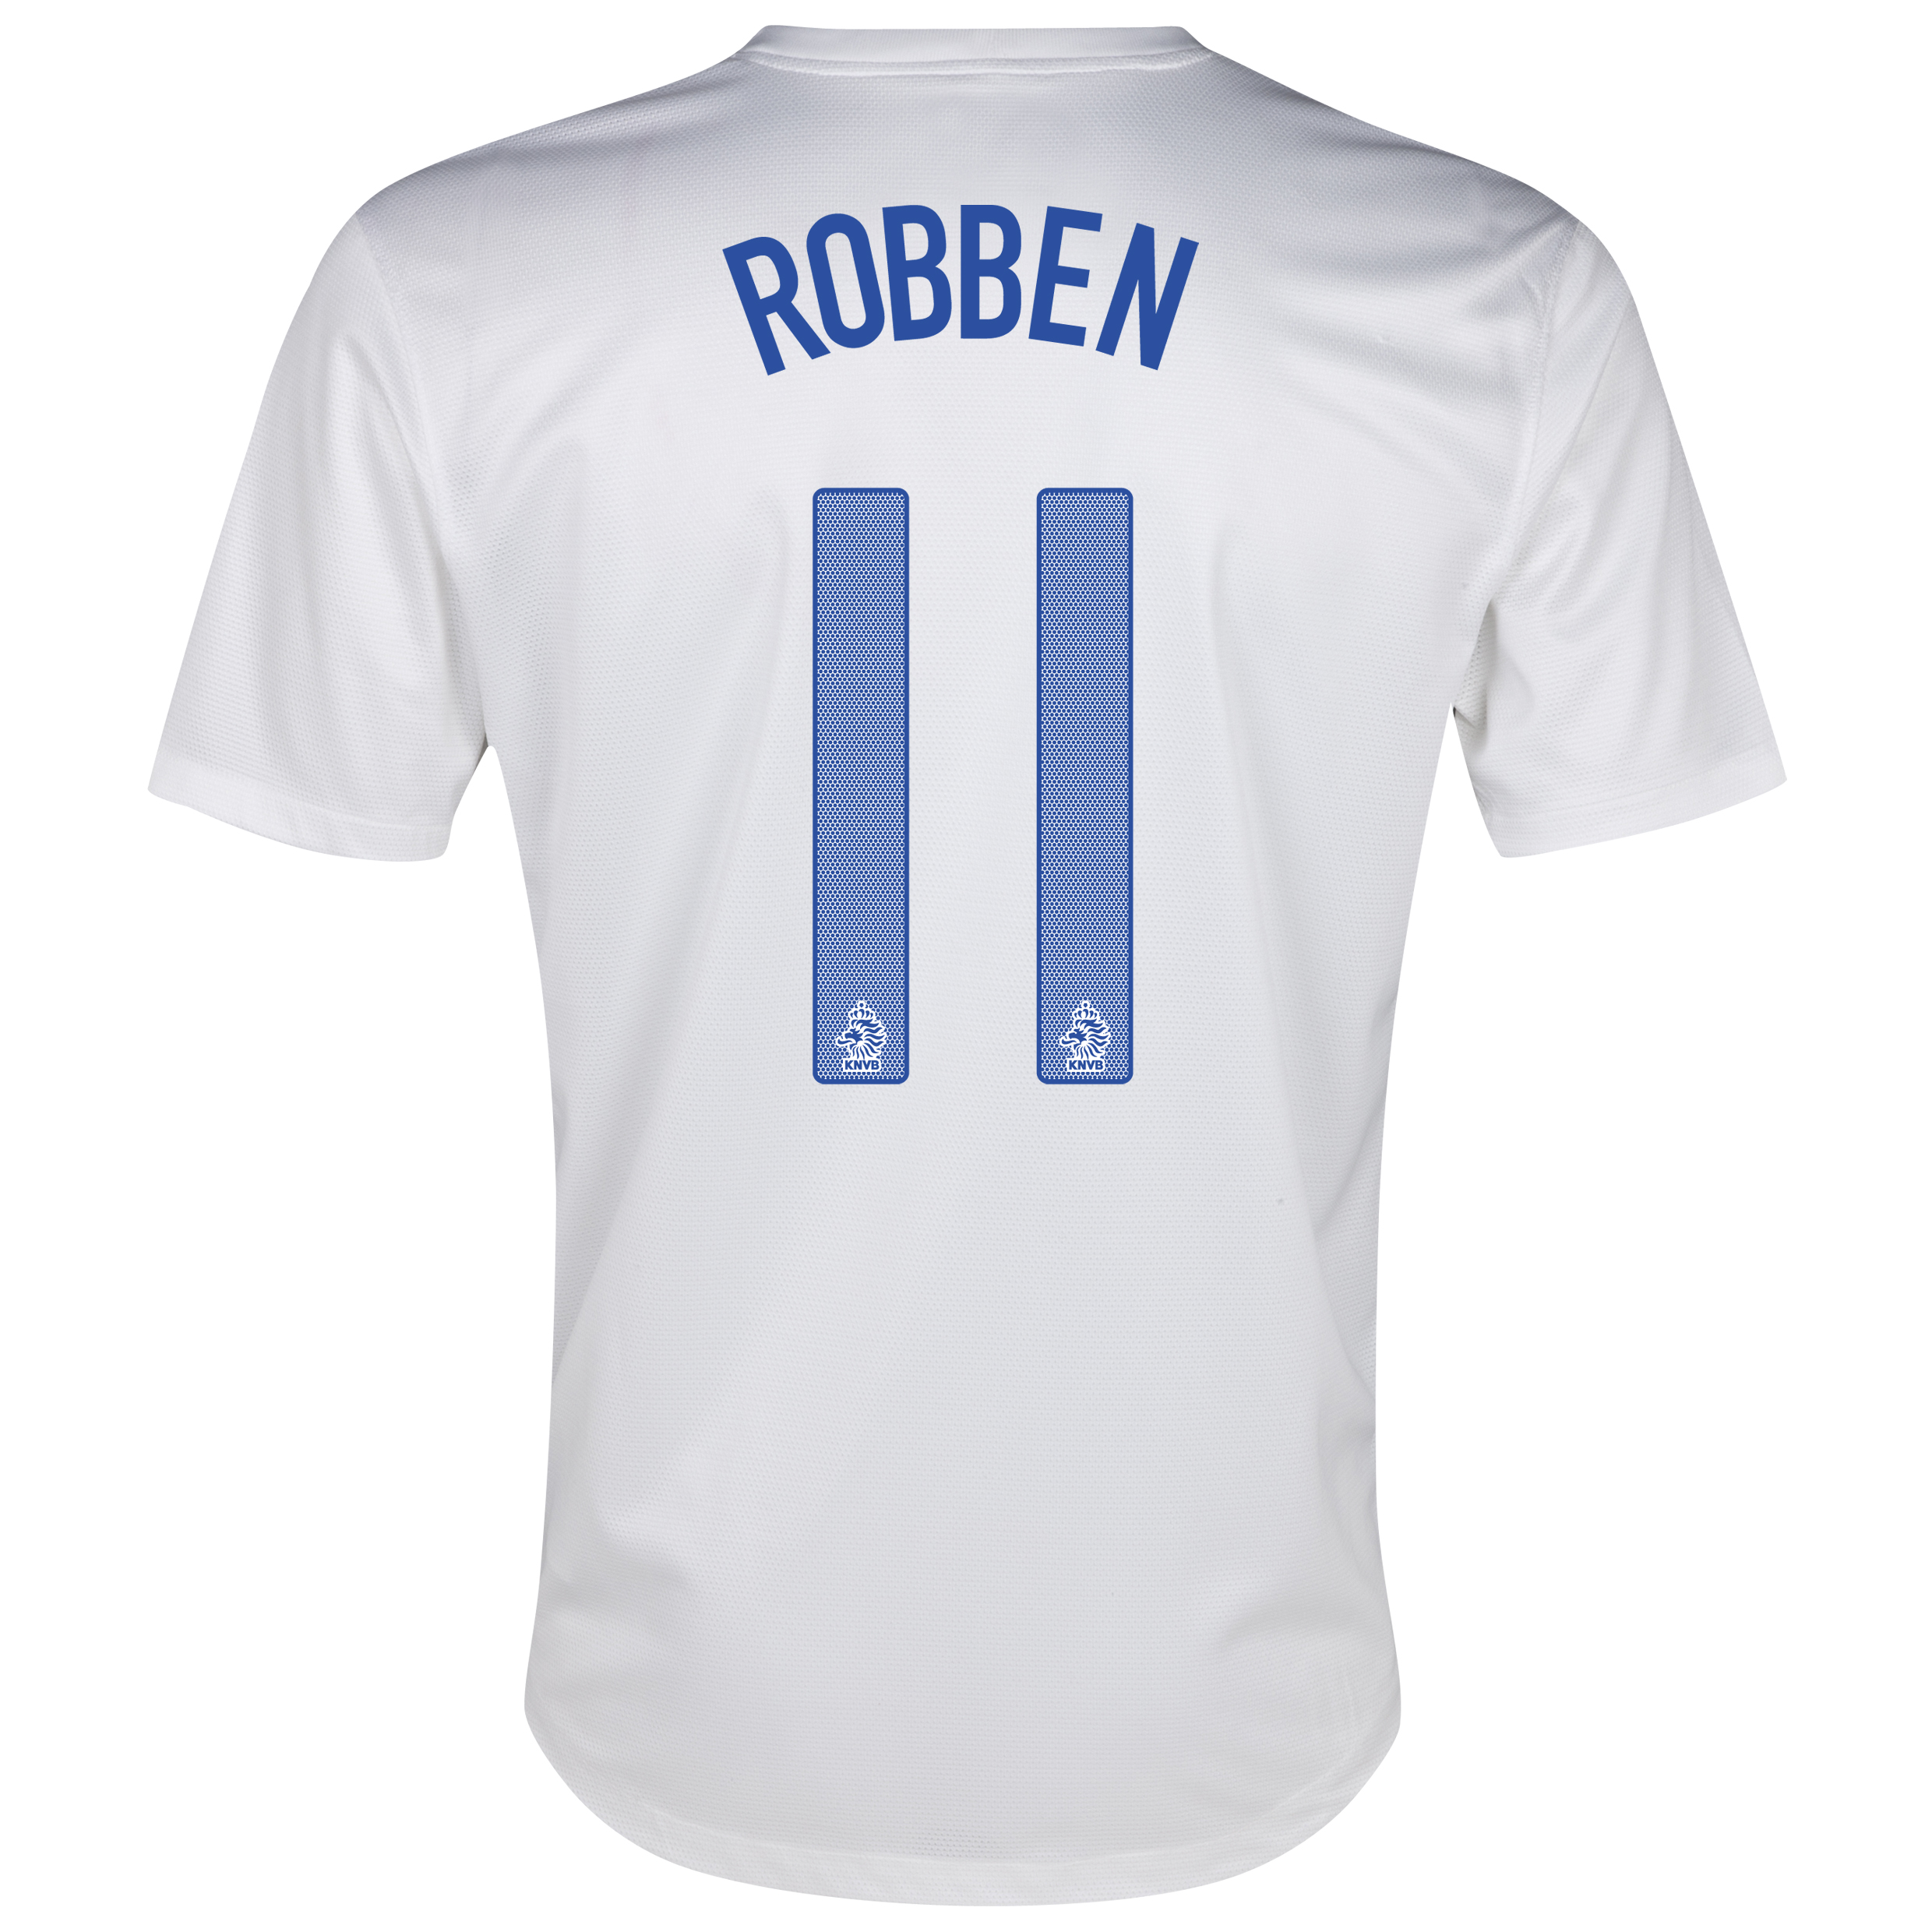 Netherlands Away Shirt 2013/14 with Robben 11 printing